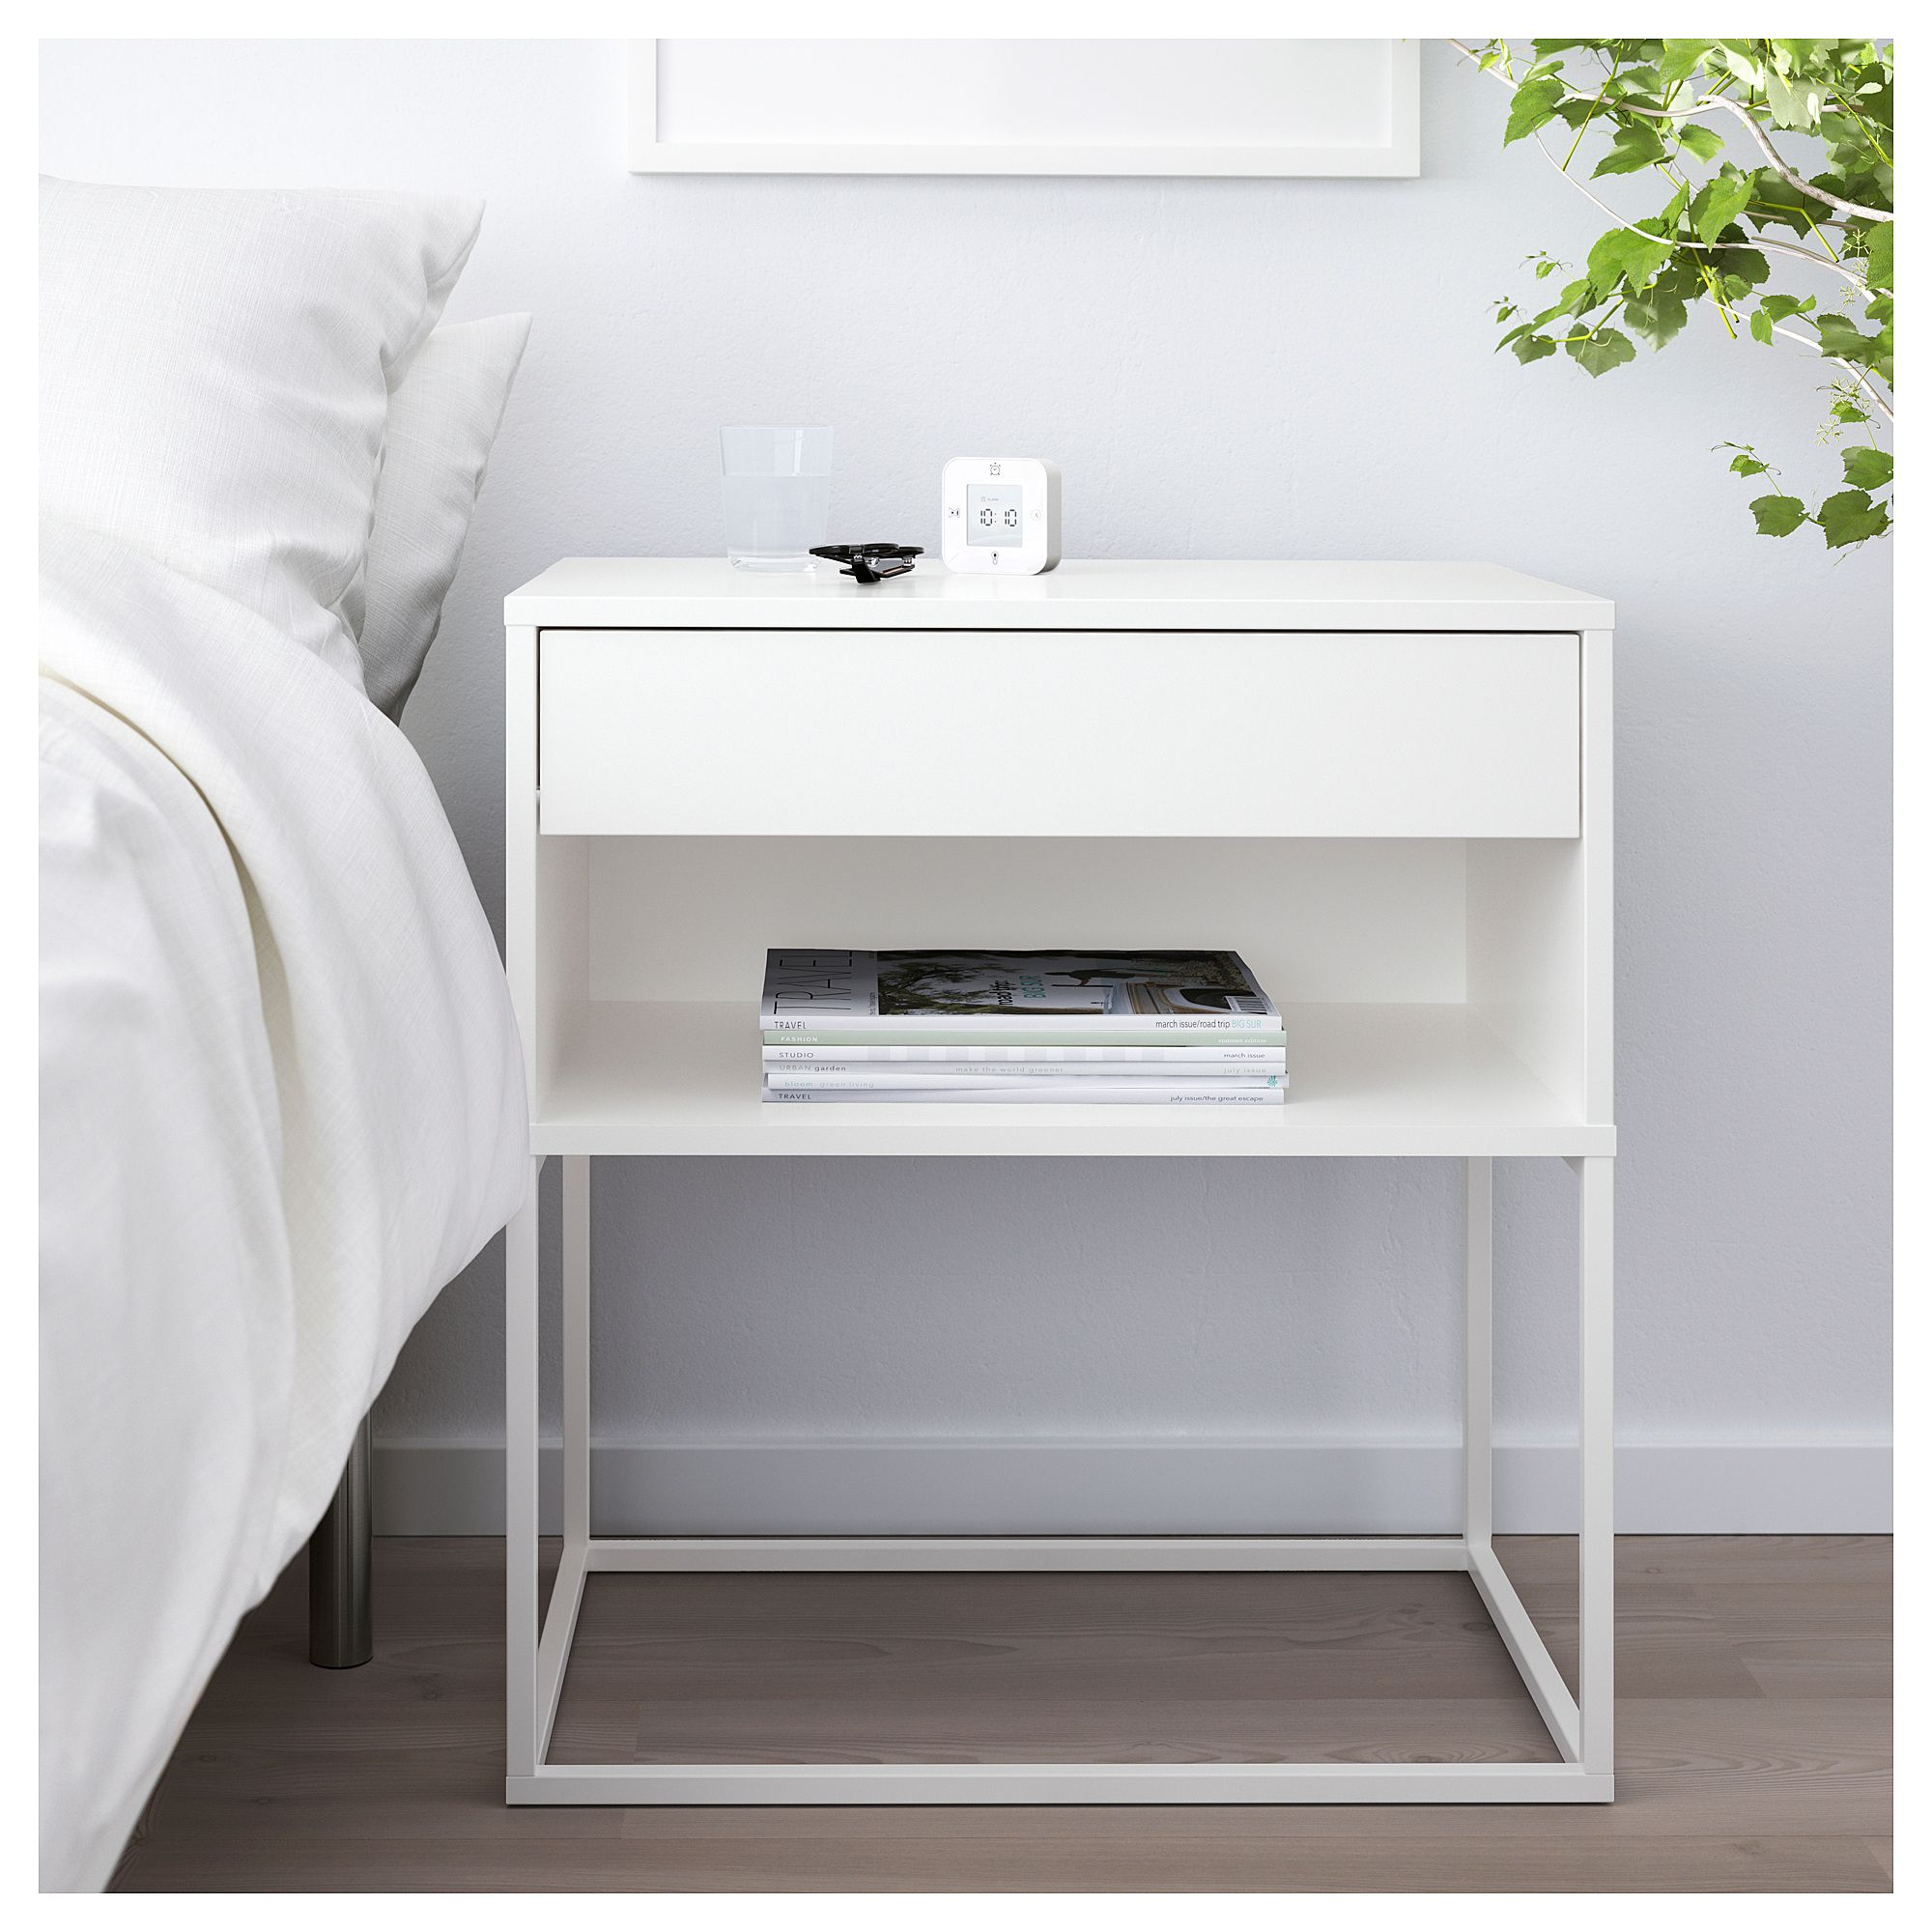 Furniture Home Furnishings Find Your Inspiration Bedroom Bedside Table Bedroom Night Stands White Bedside Table